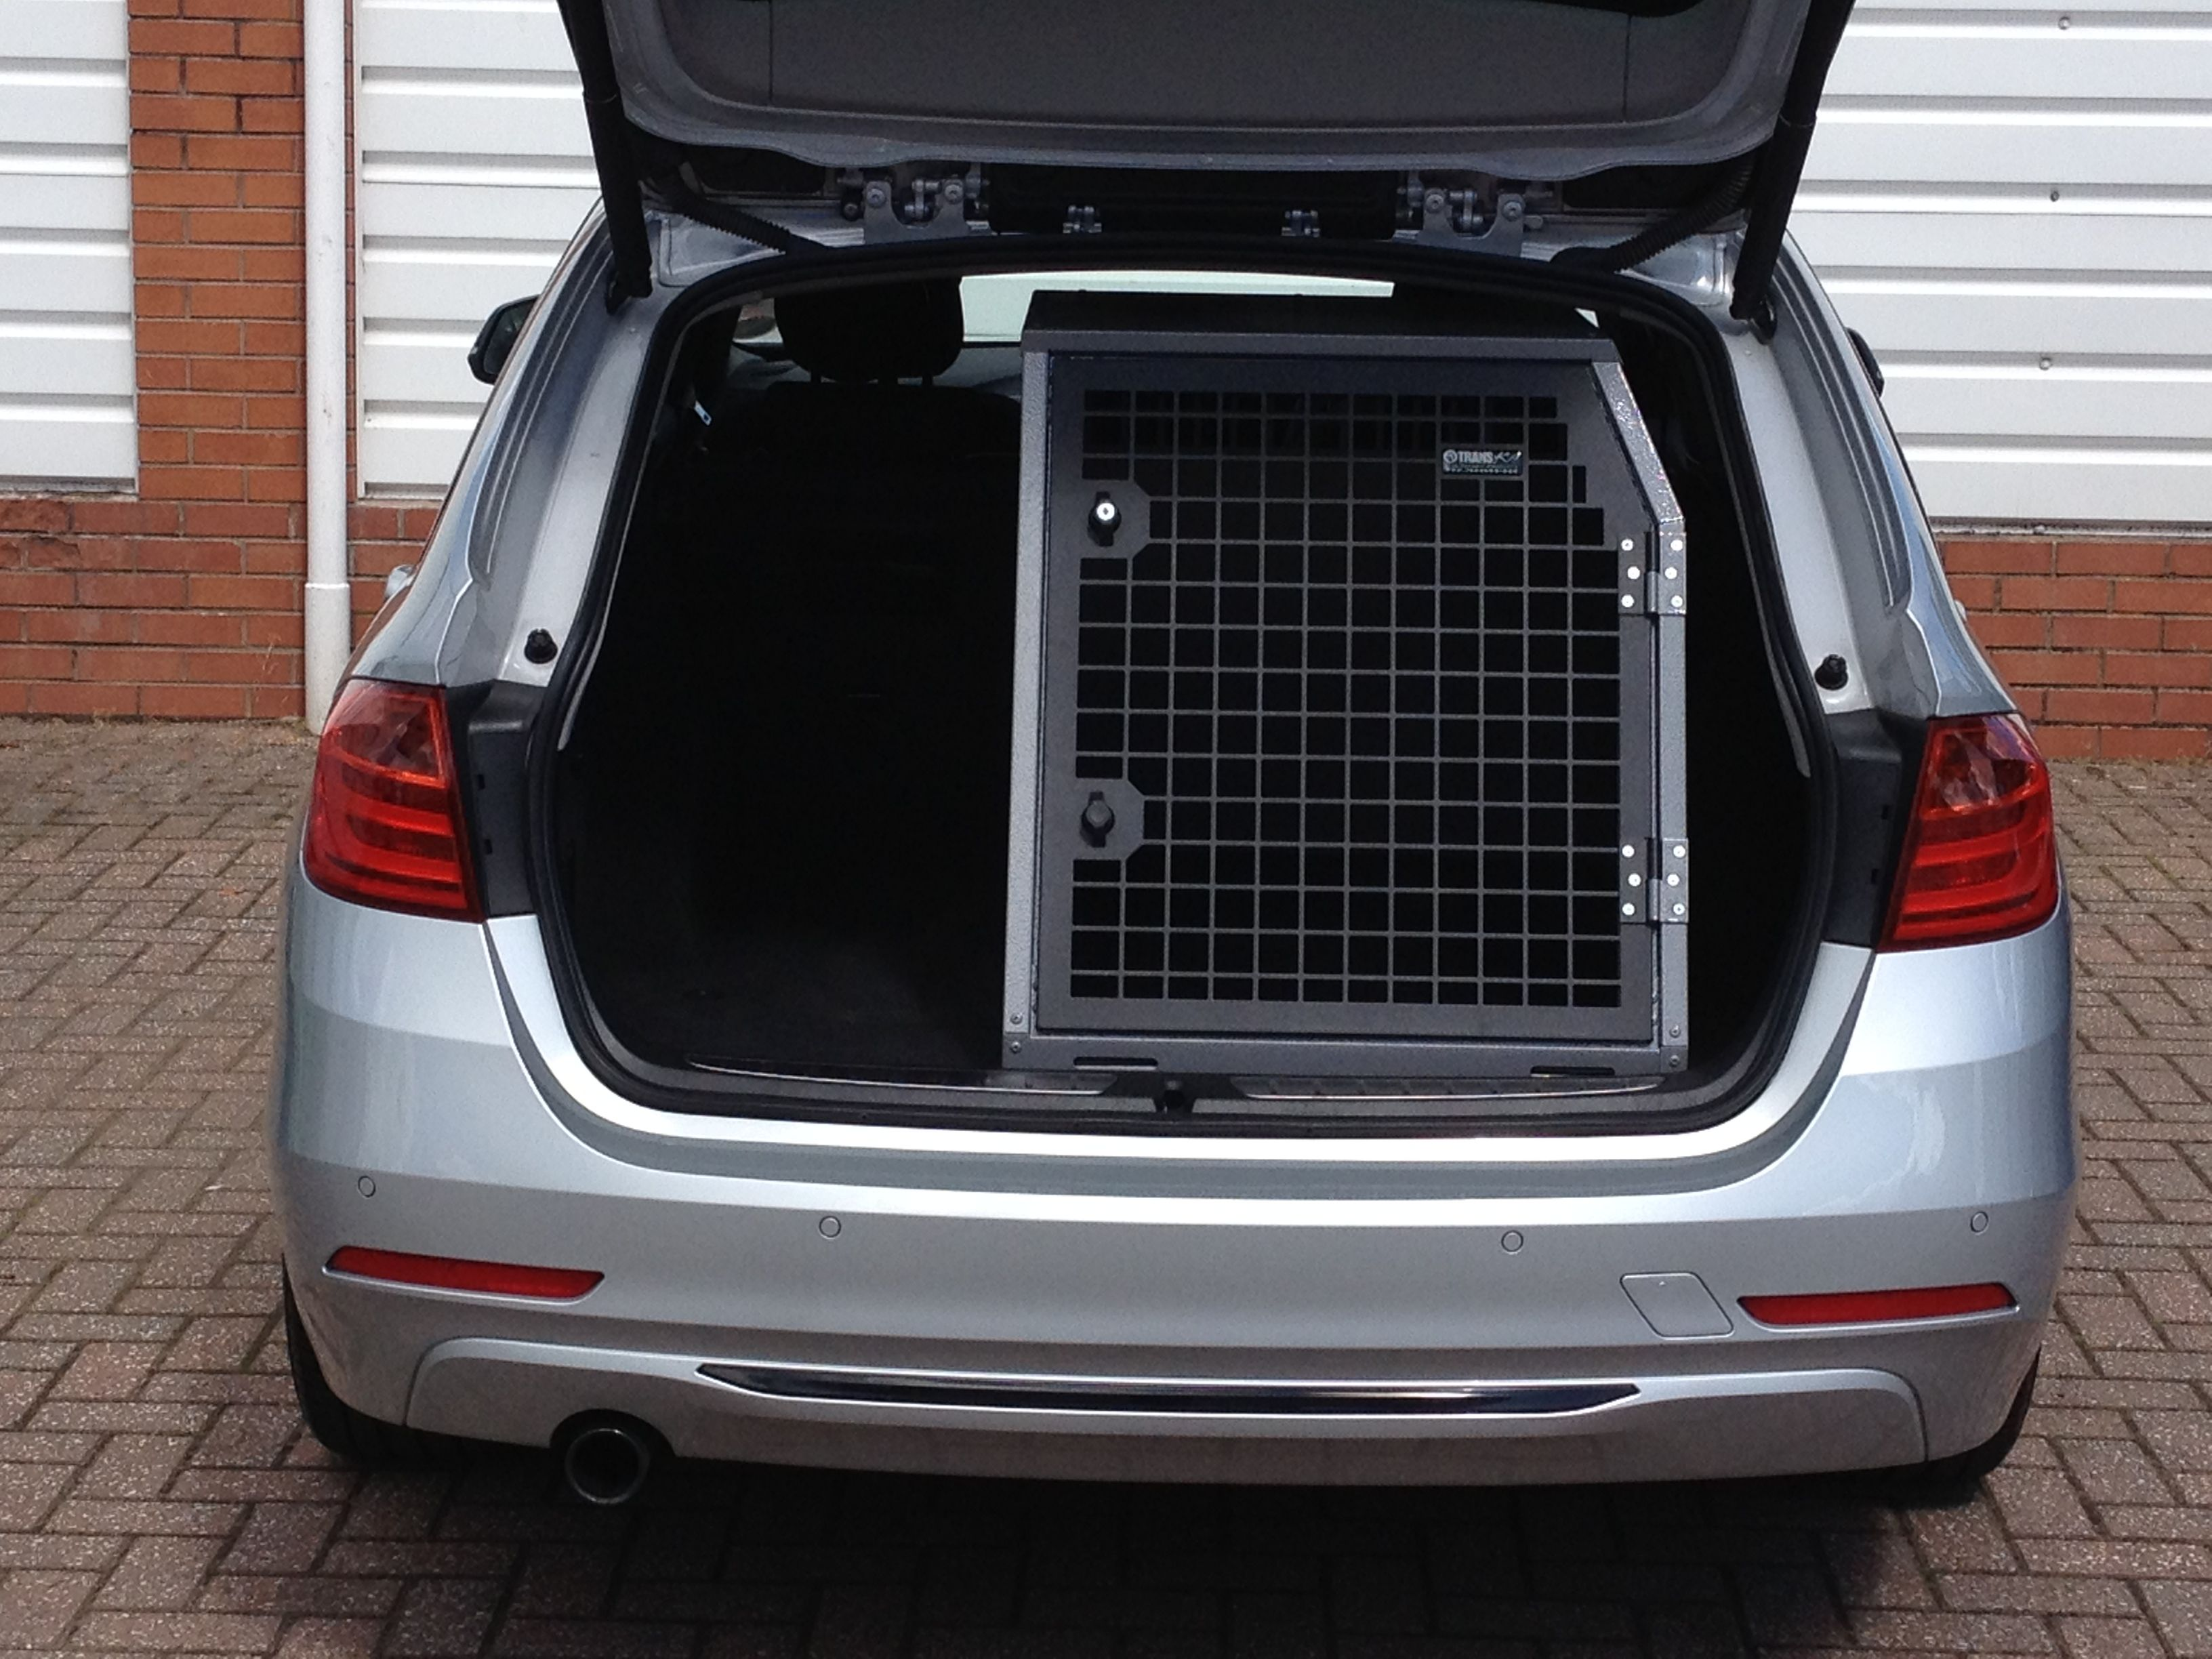 Transk9 B23 Bmw 3 Series Touring Dog Cage Dog Crate Www Transk9